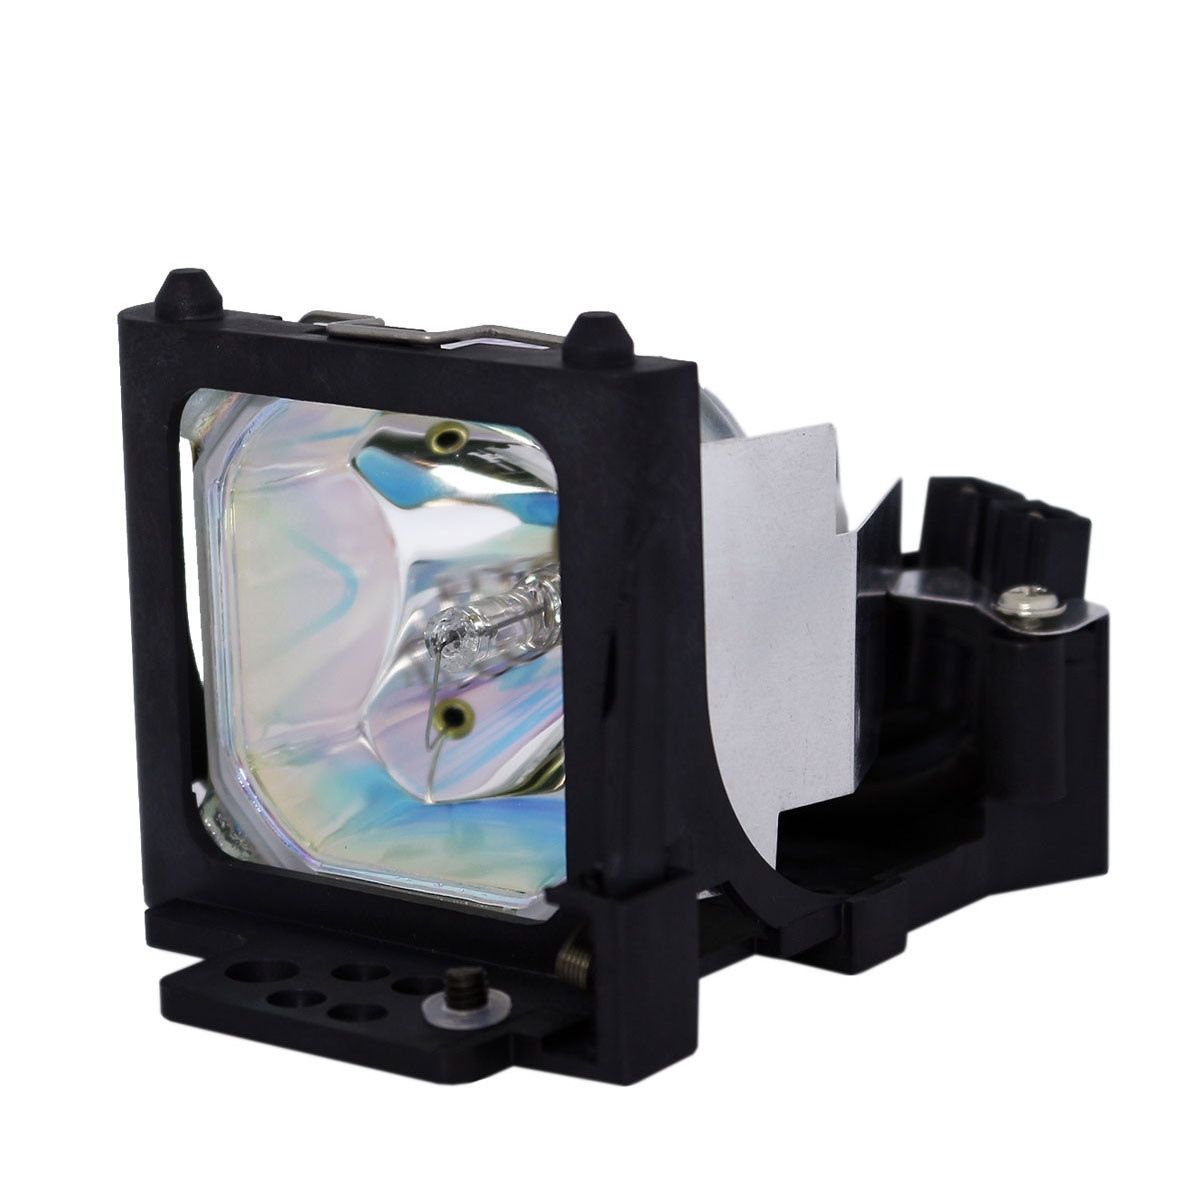 Projector Lamp Bulb DT00301 DT-00301 for HITACHI CP-S220 CP-S220A CP-S220W CP-S270 CP-X270 PJ-LC2001 with housing dt01021 projector lamp bulb for hitachi cp x3010 cp x3010n cp x3010z cp x3011 cp x3011n